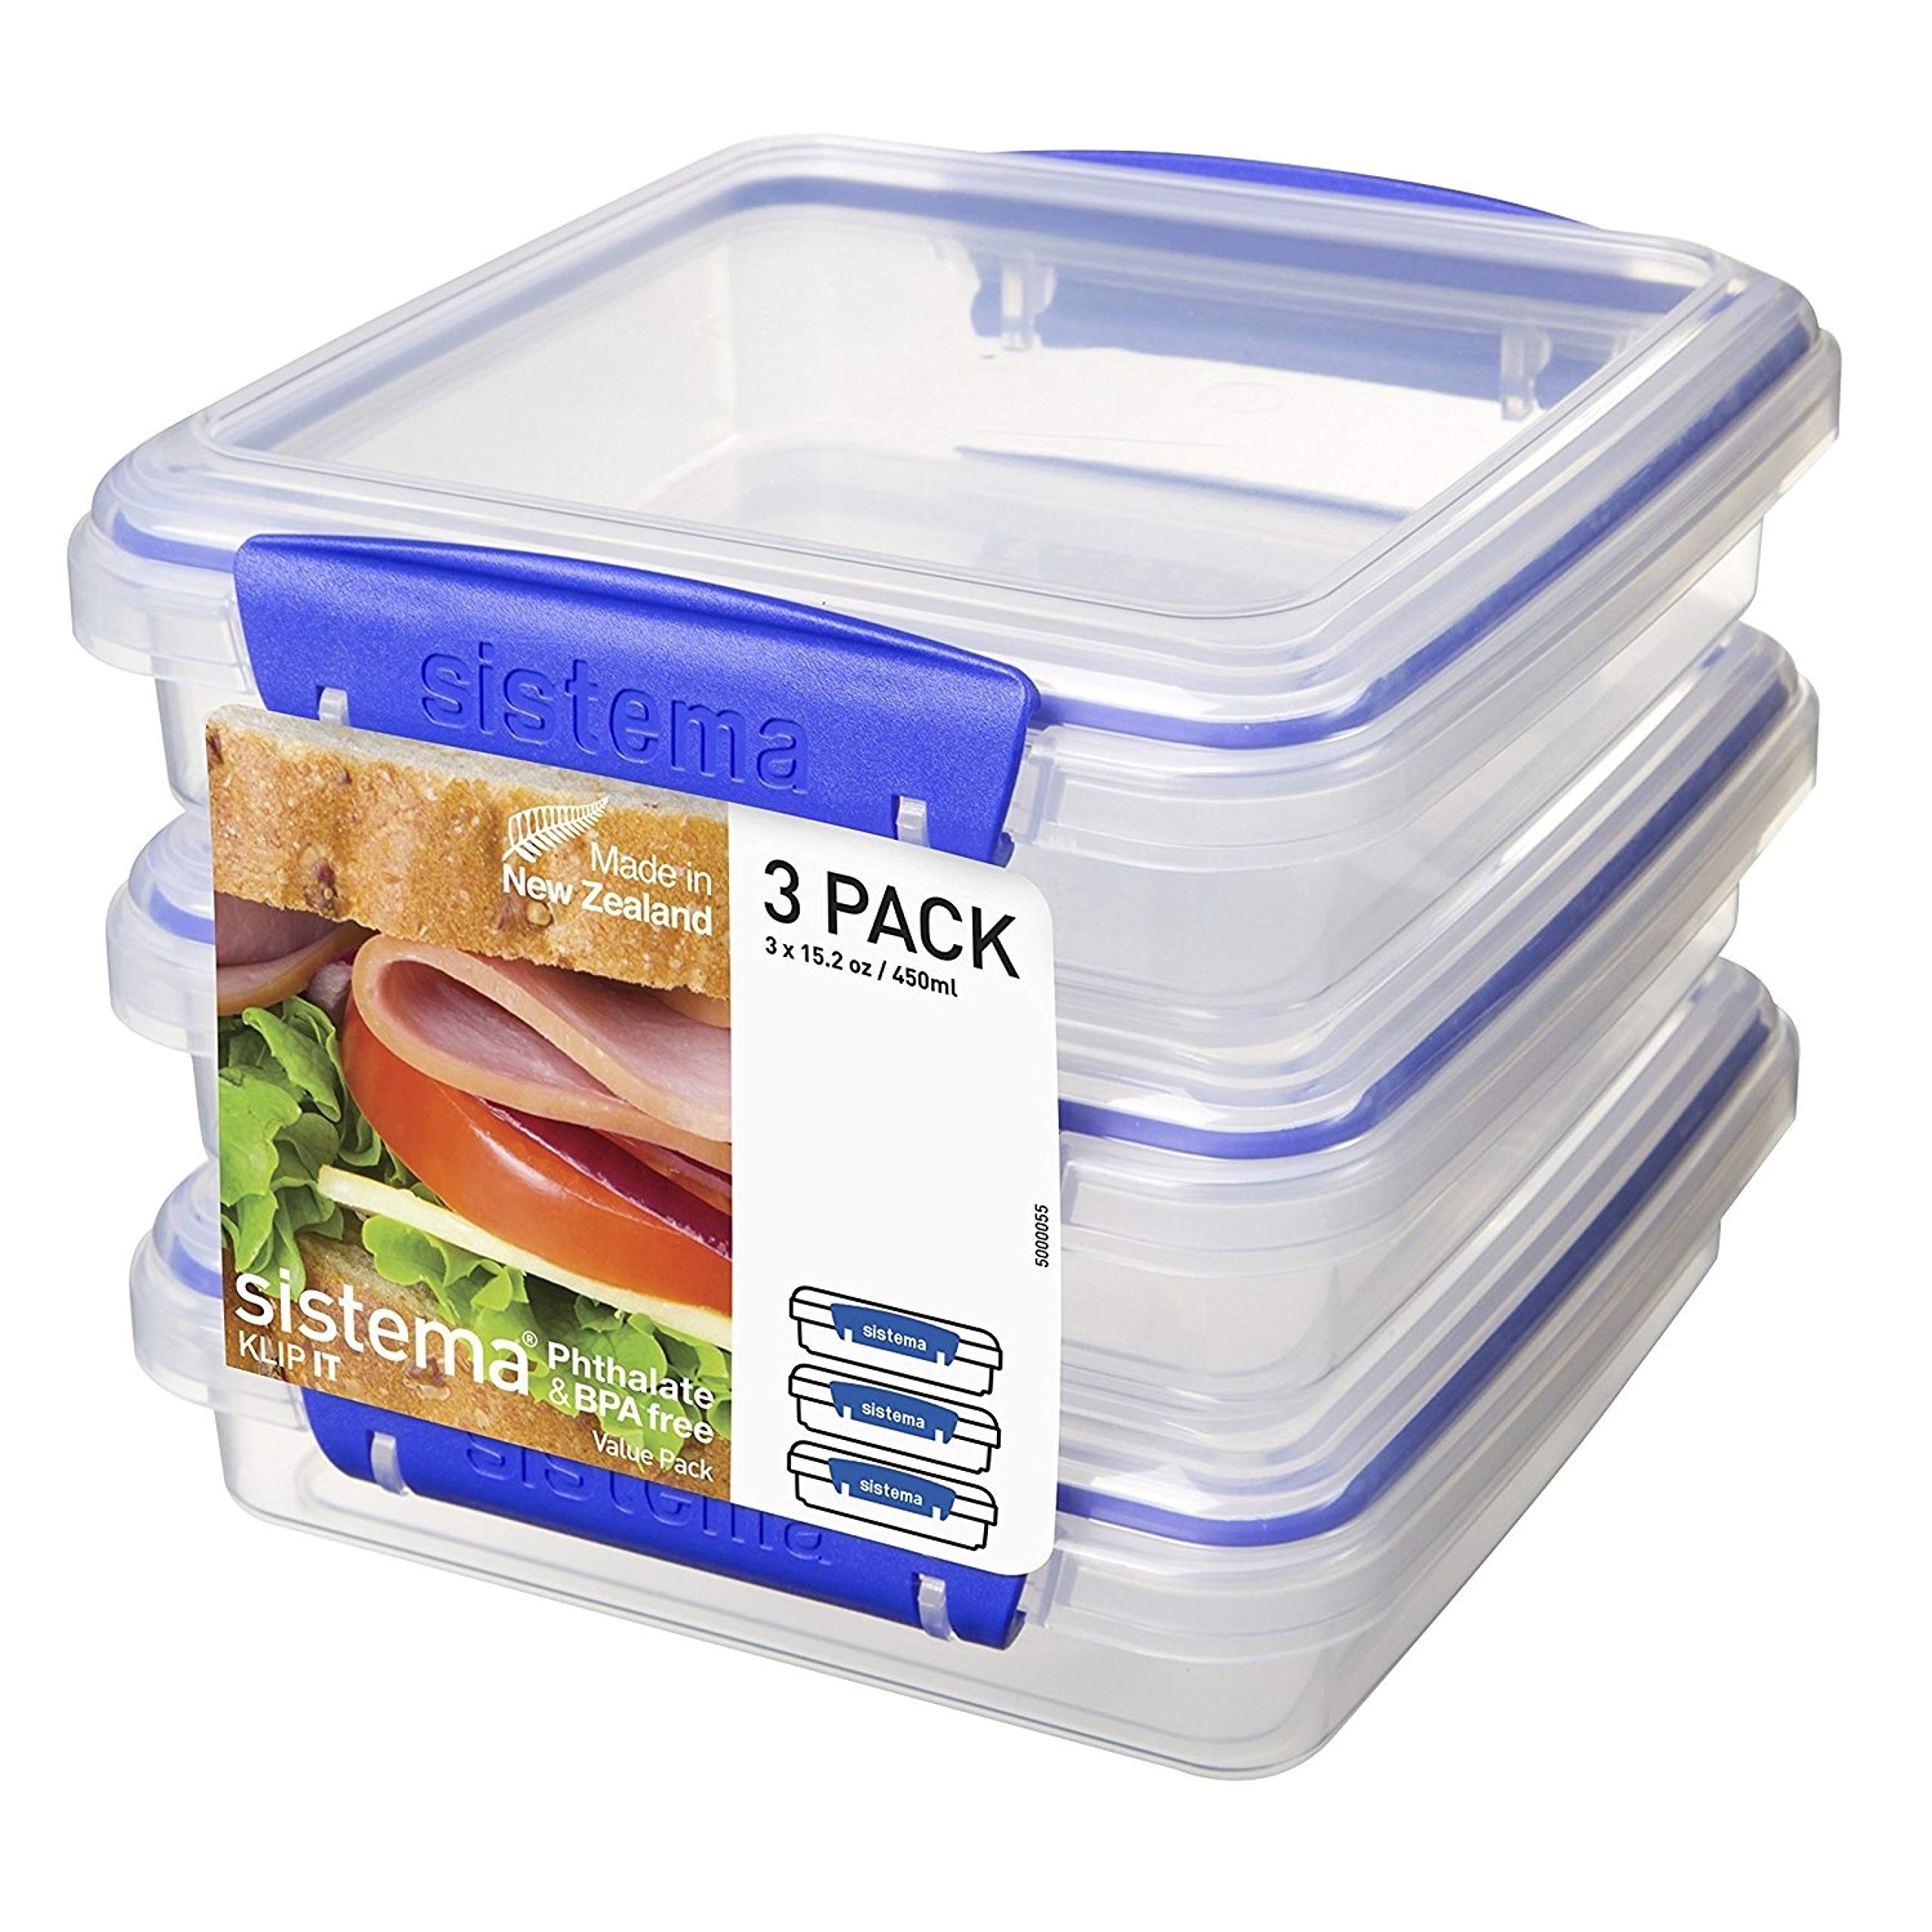 Sistema KLIP IT Collection Sandwich Box Food Storage Container, 15.2 oz./0.4 L, Clear/Blue, 3 Count